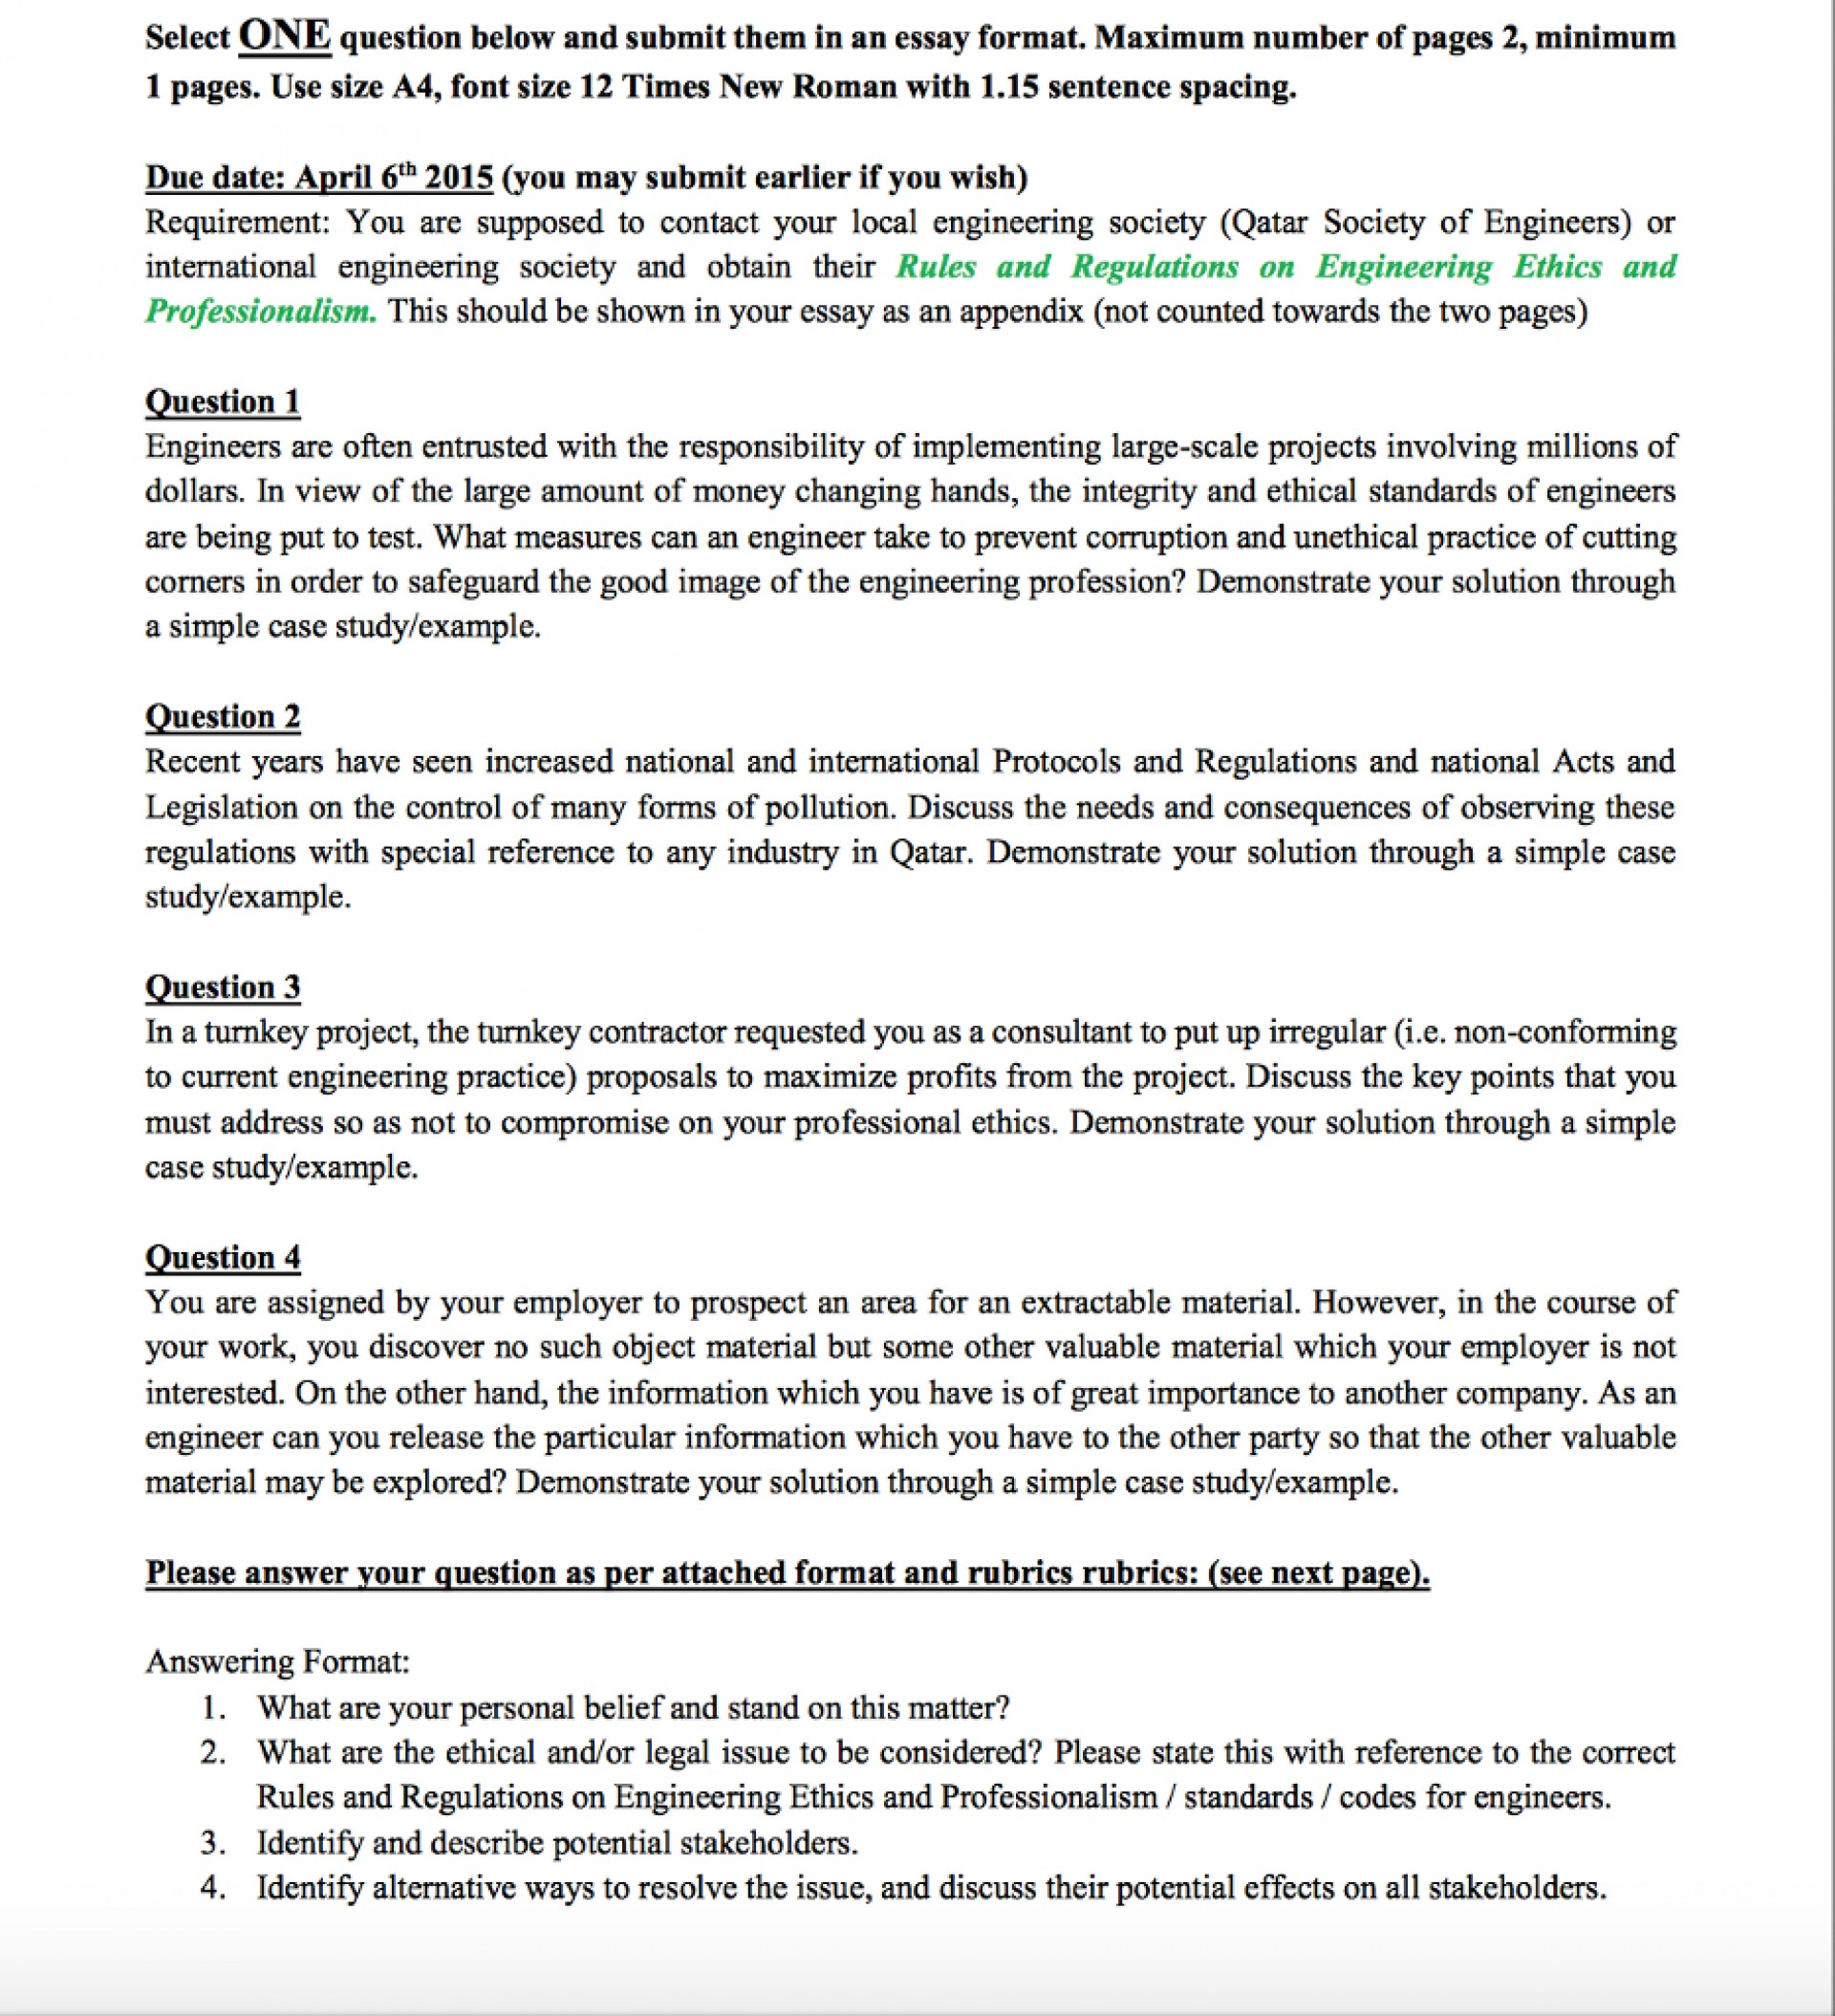 answering multiple questions in essay format examples